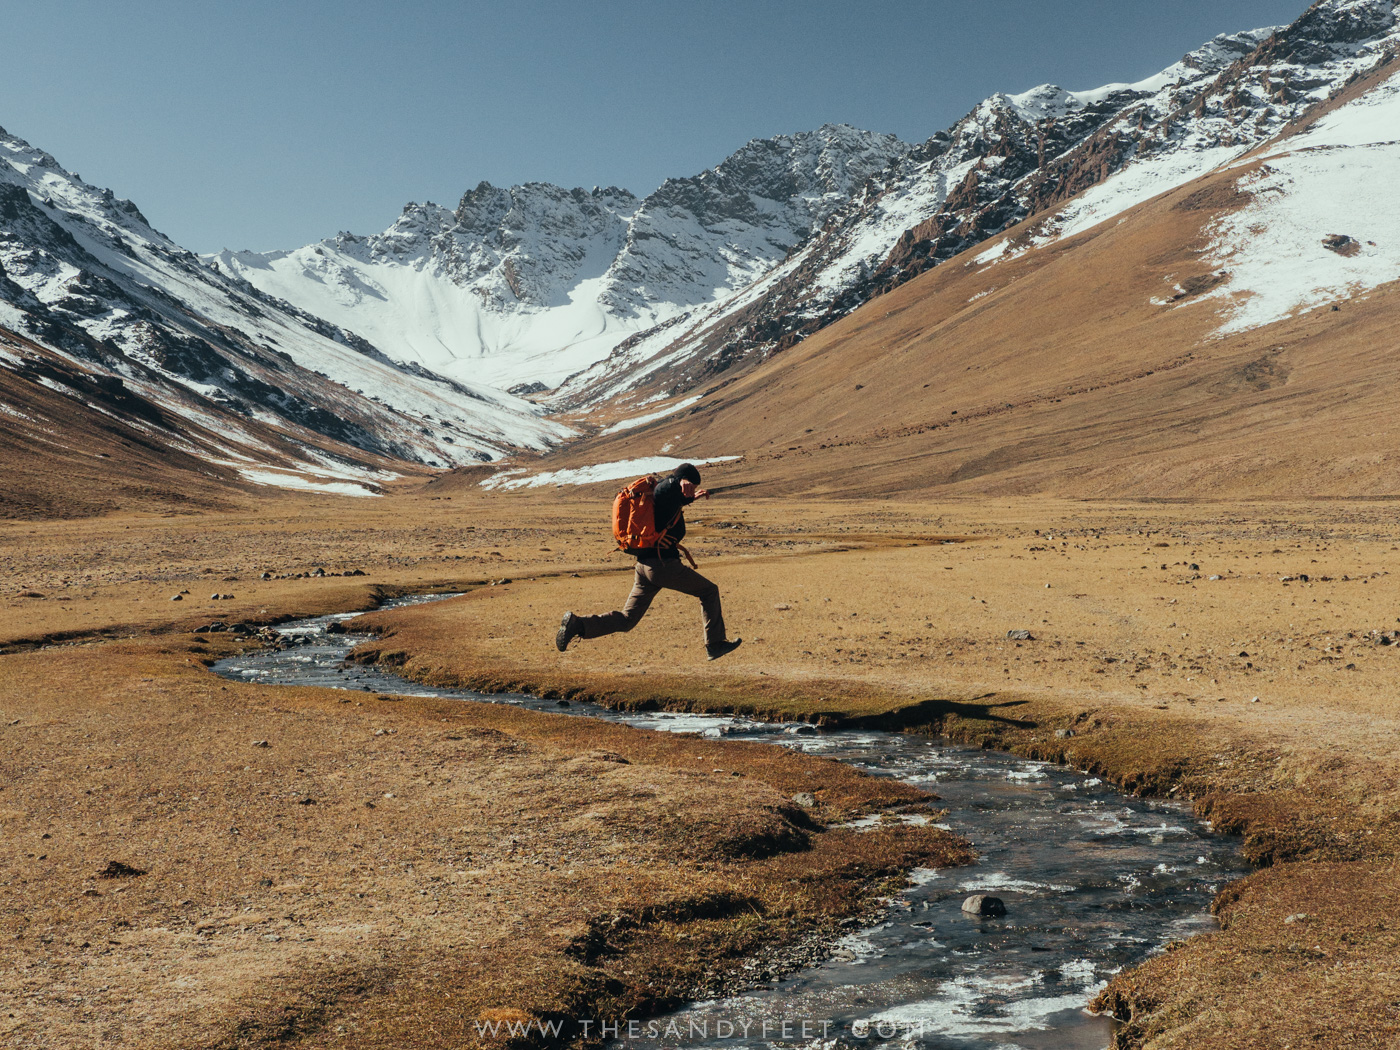 Central Asia Travel : A Complete Beginners Guide For Travelling The Silk Road